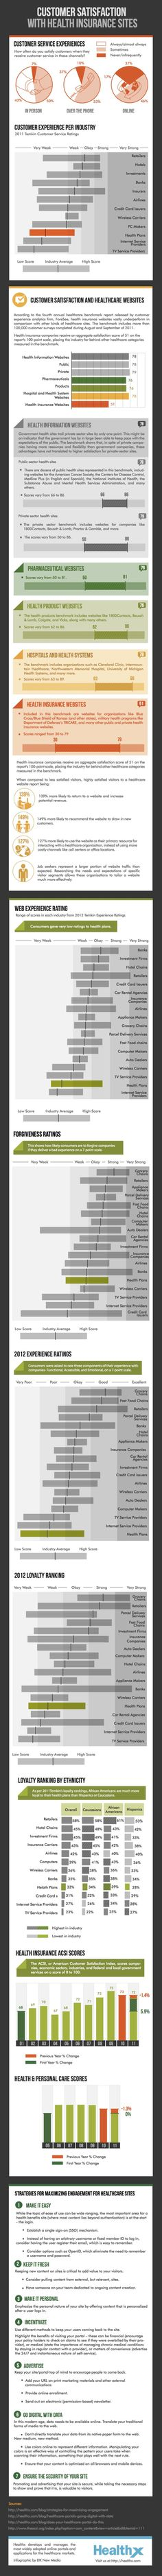 Customer Satisfaction with Health Insurance Sites [INFOGRAPHIC]